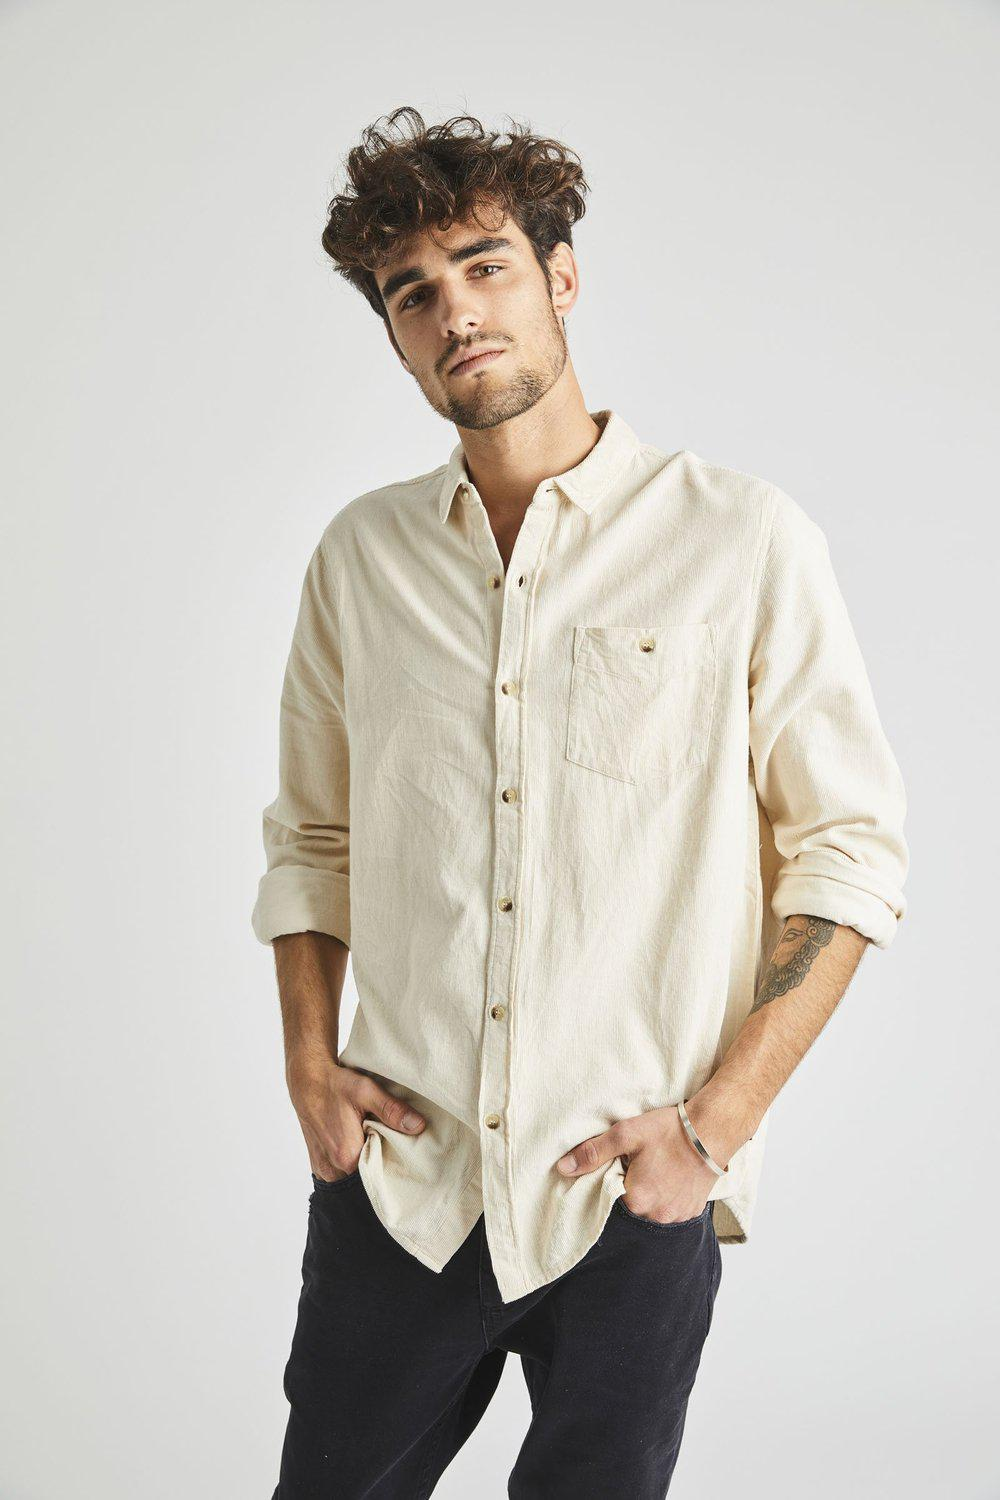 Men At Work L/S Shirt / Natural Cord | Rollas | Mad About The Boy